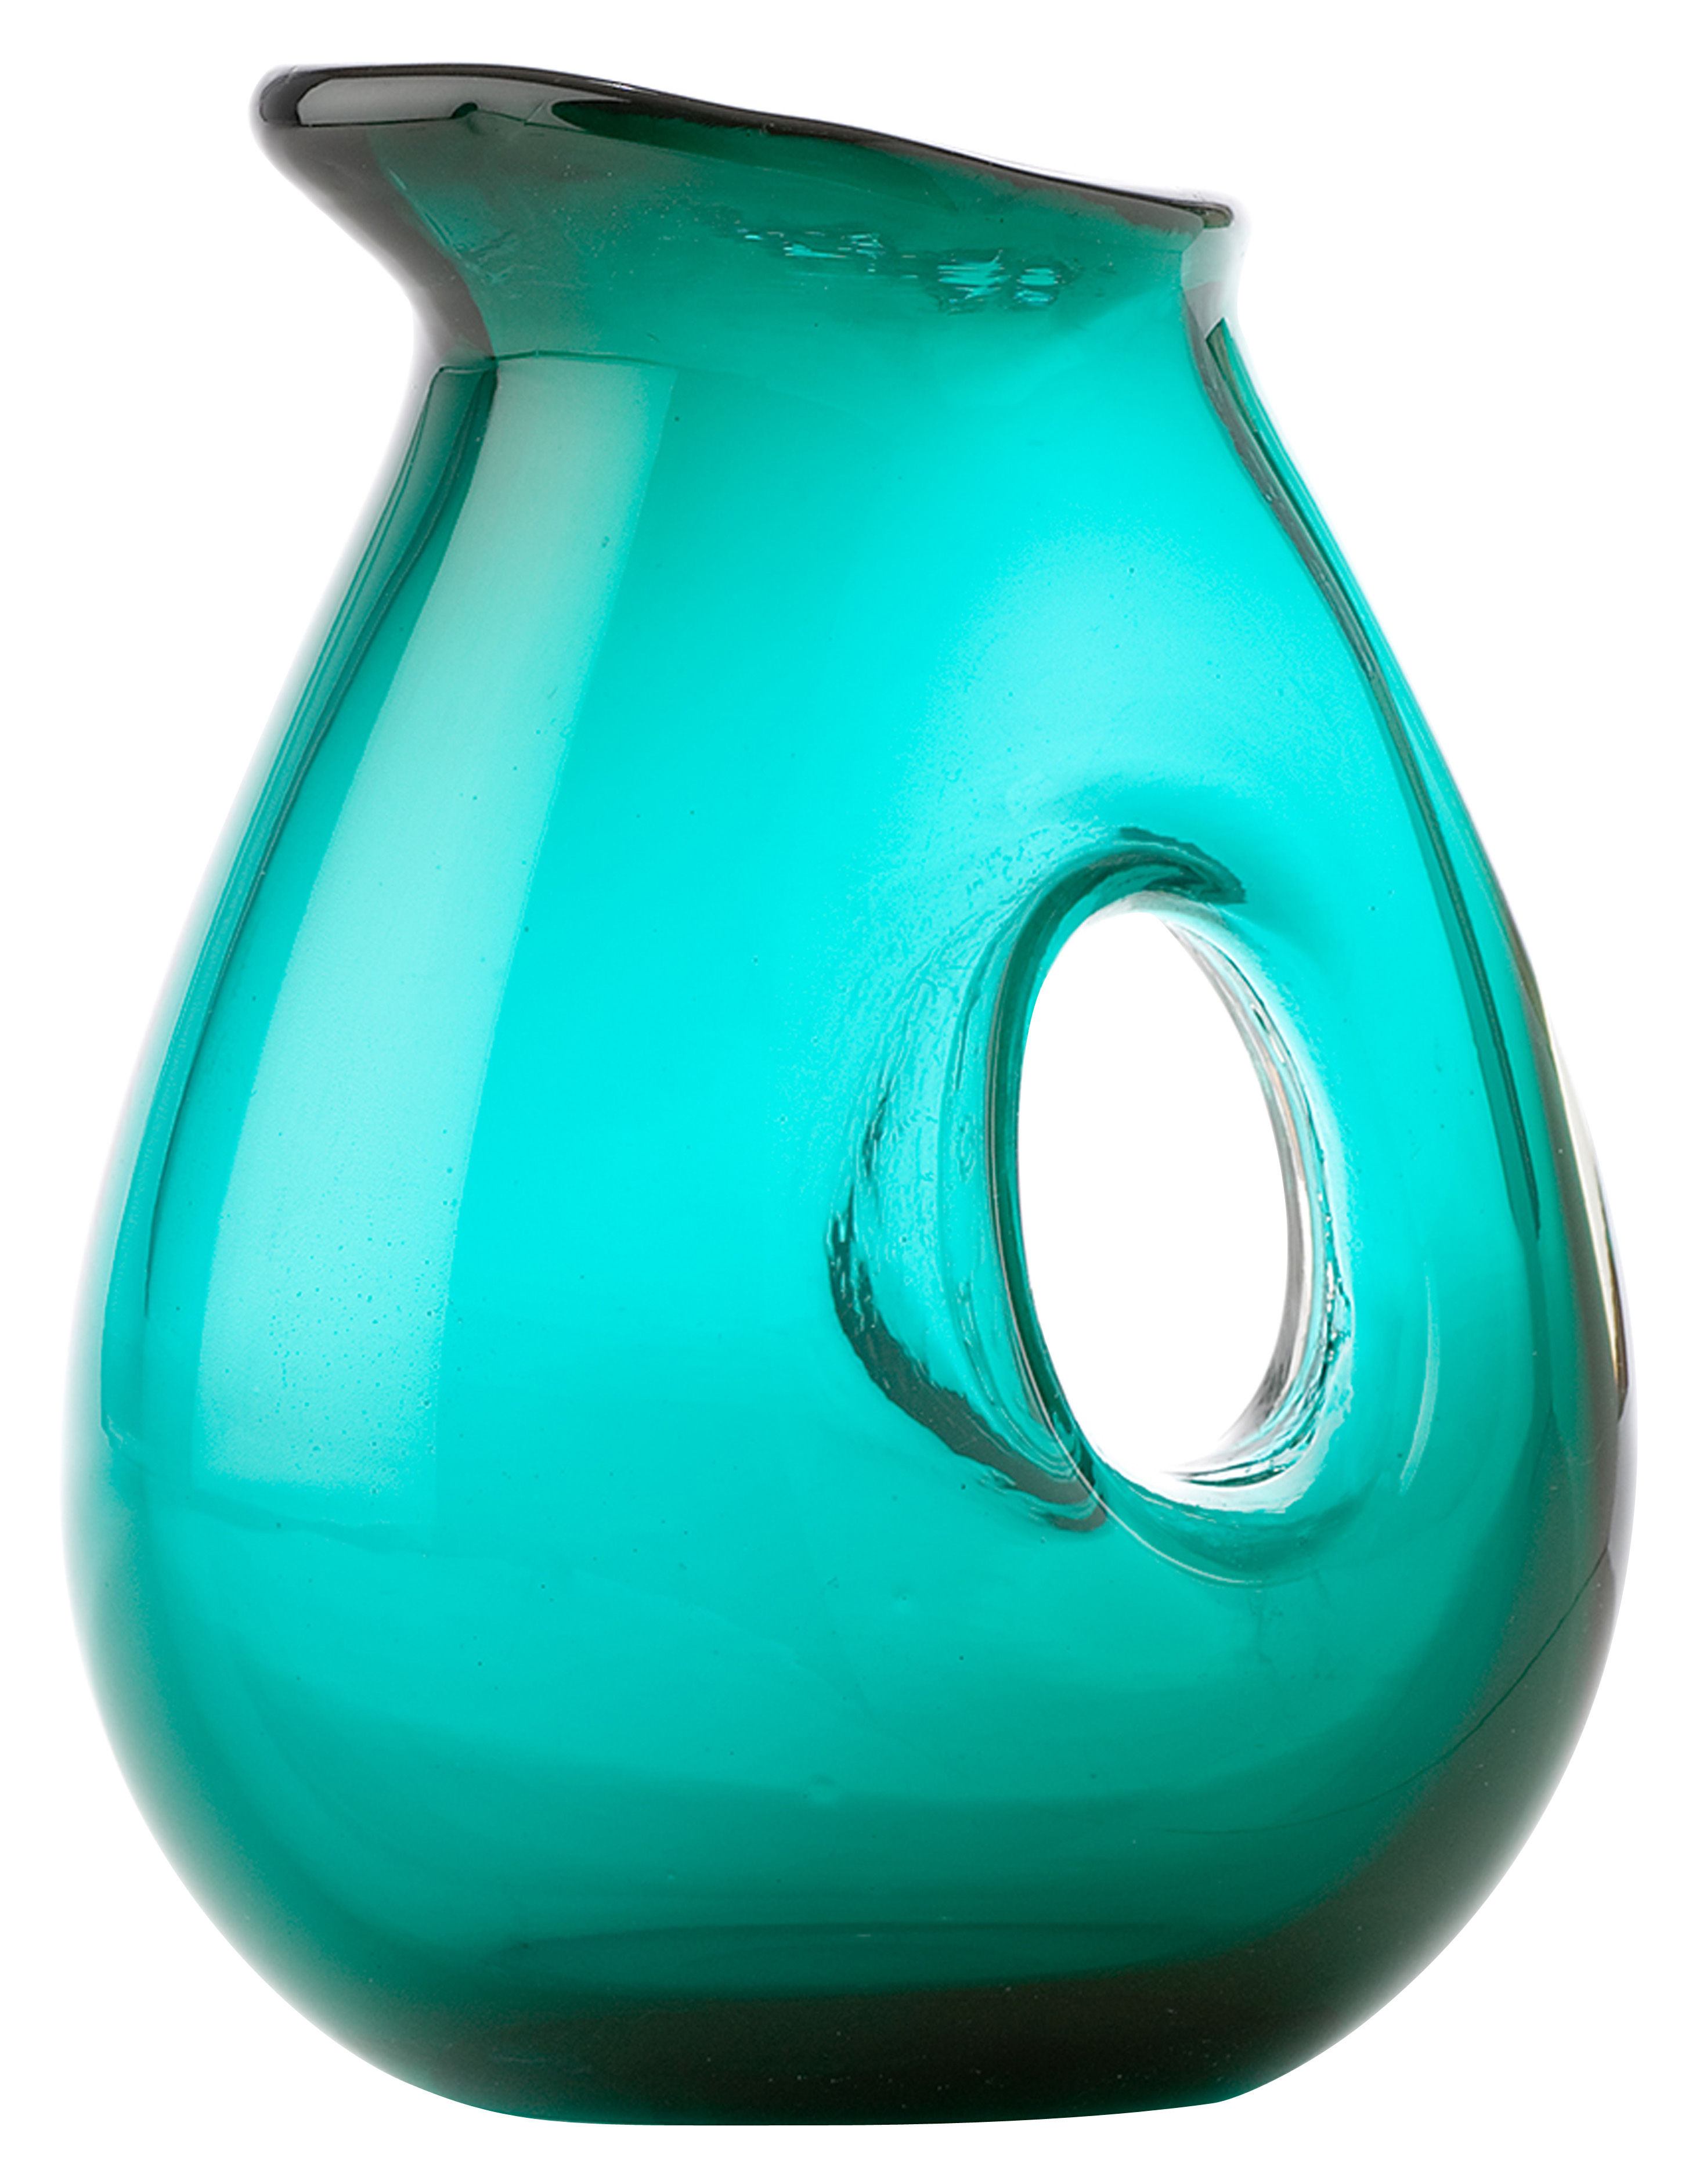 Tableware - Water Carafes & Wine Decanters - Jug with hole Carafe - 1 Liter by Pols Potten - Seagreen - Mouth blown glass